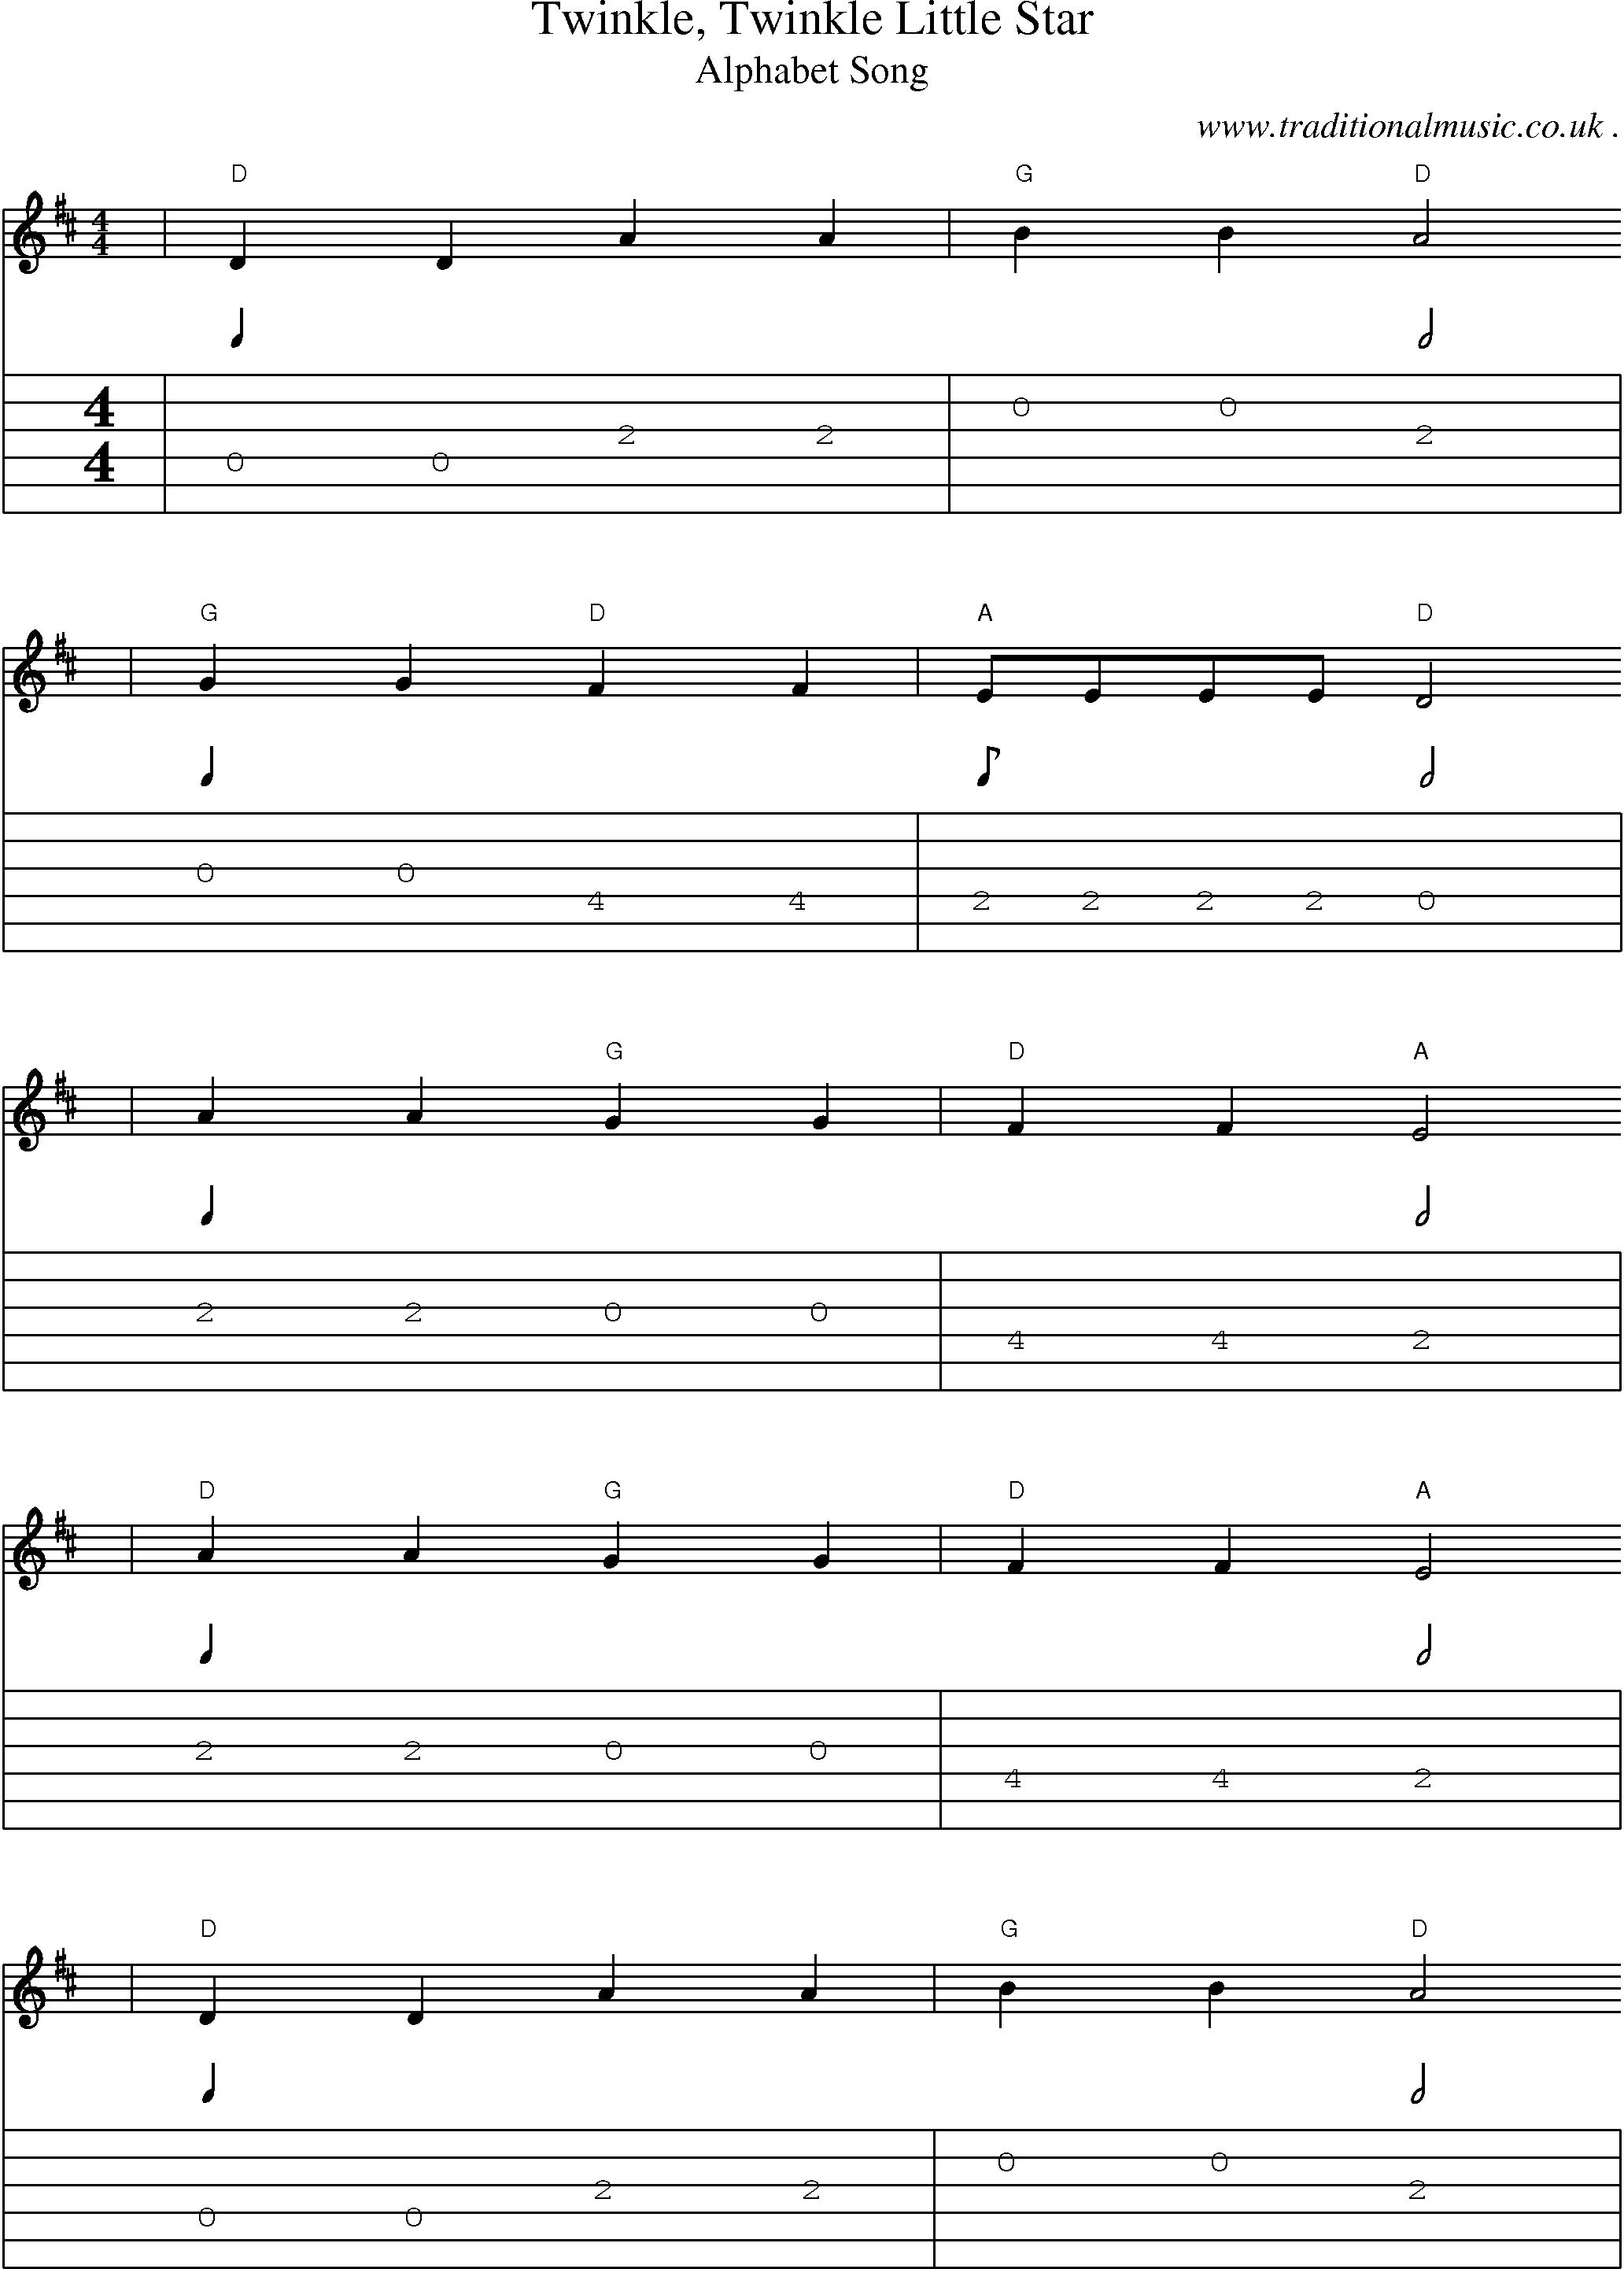 American Old-time music, Scores and Tabs for Guitar - Twinkle Twinkle Little Star